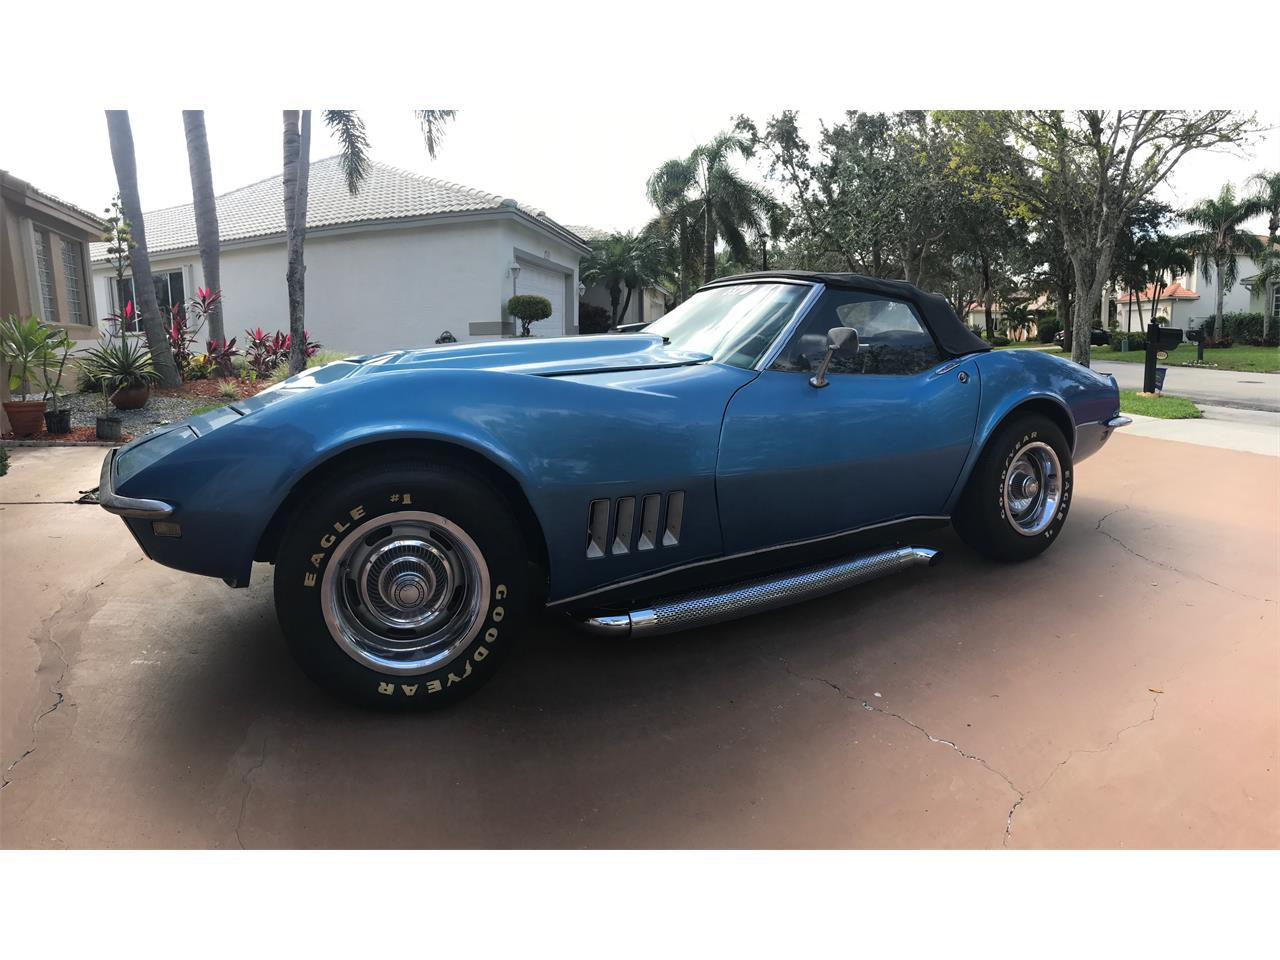 Large Picture of '68 Chevrolet Corvette located in Coral Springs Florida - $30,000.00 Offered by a Private Seller - H0VT